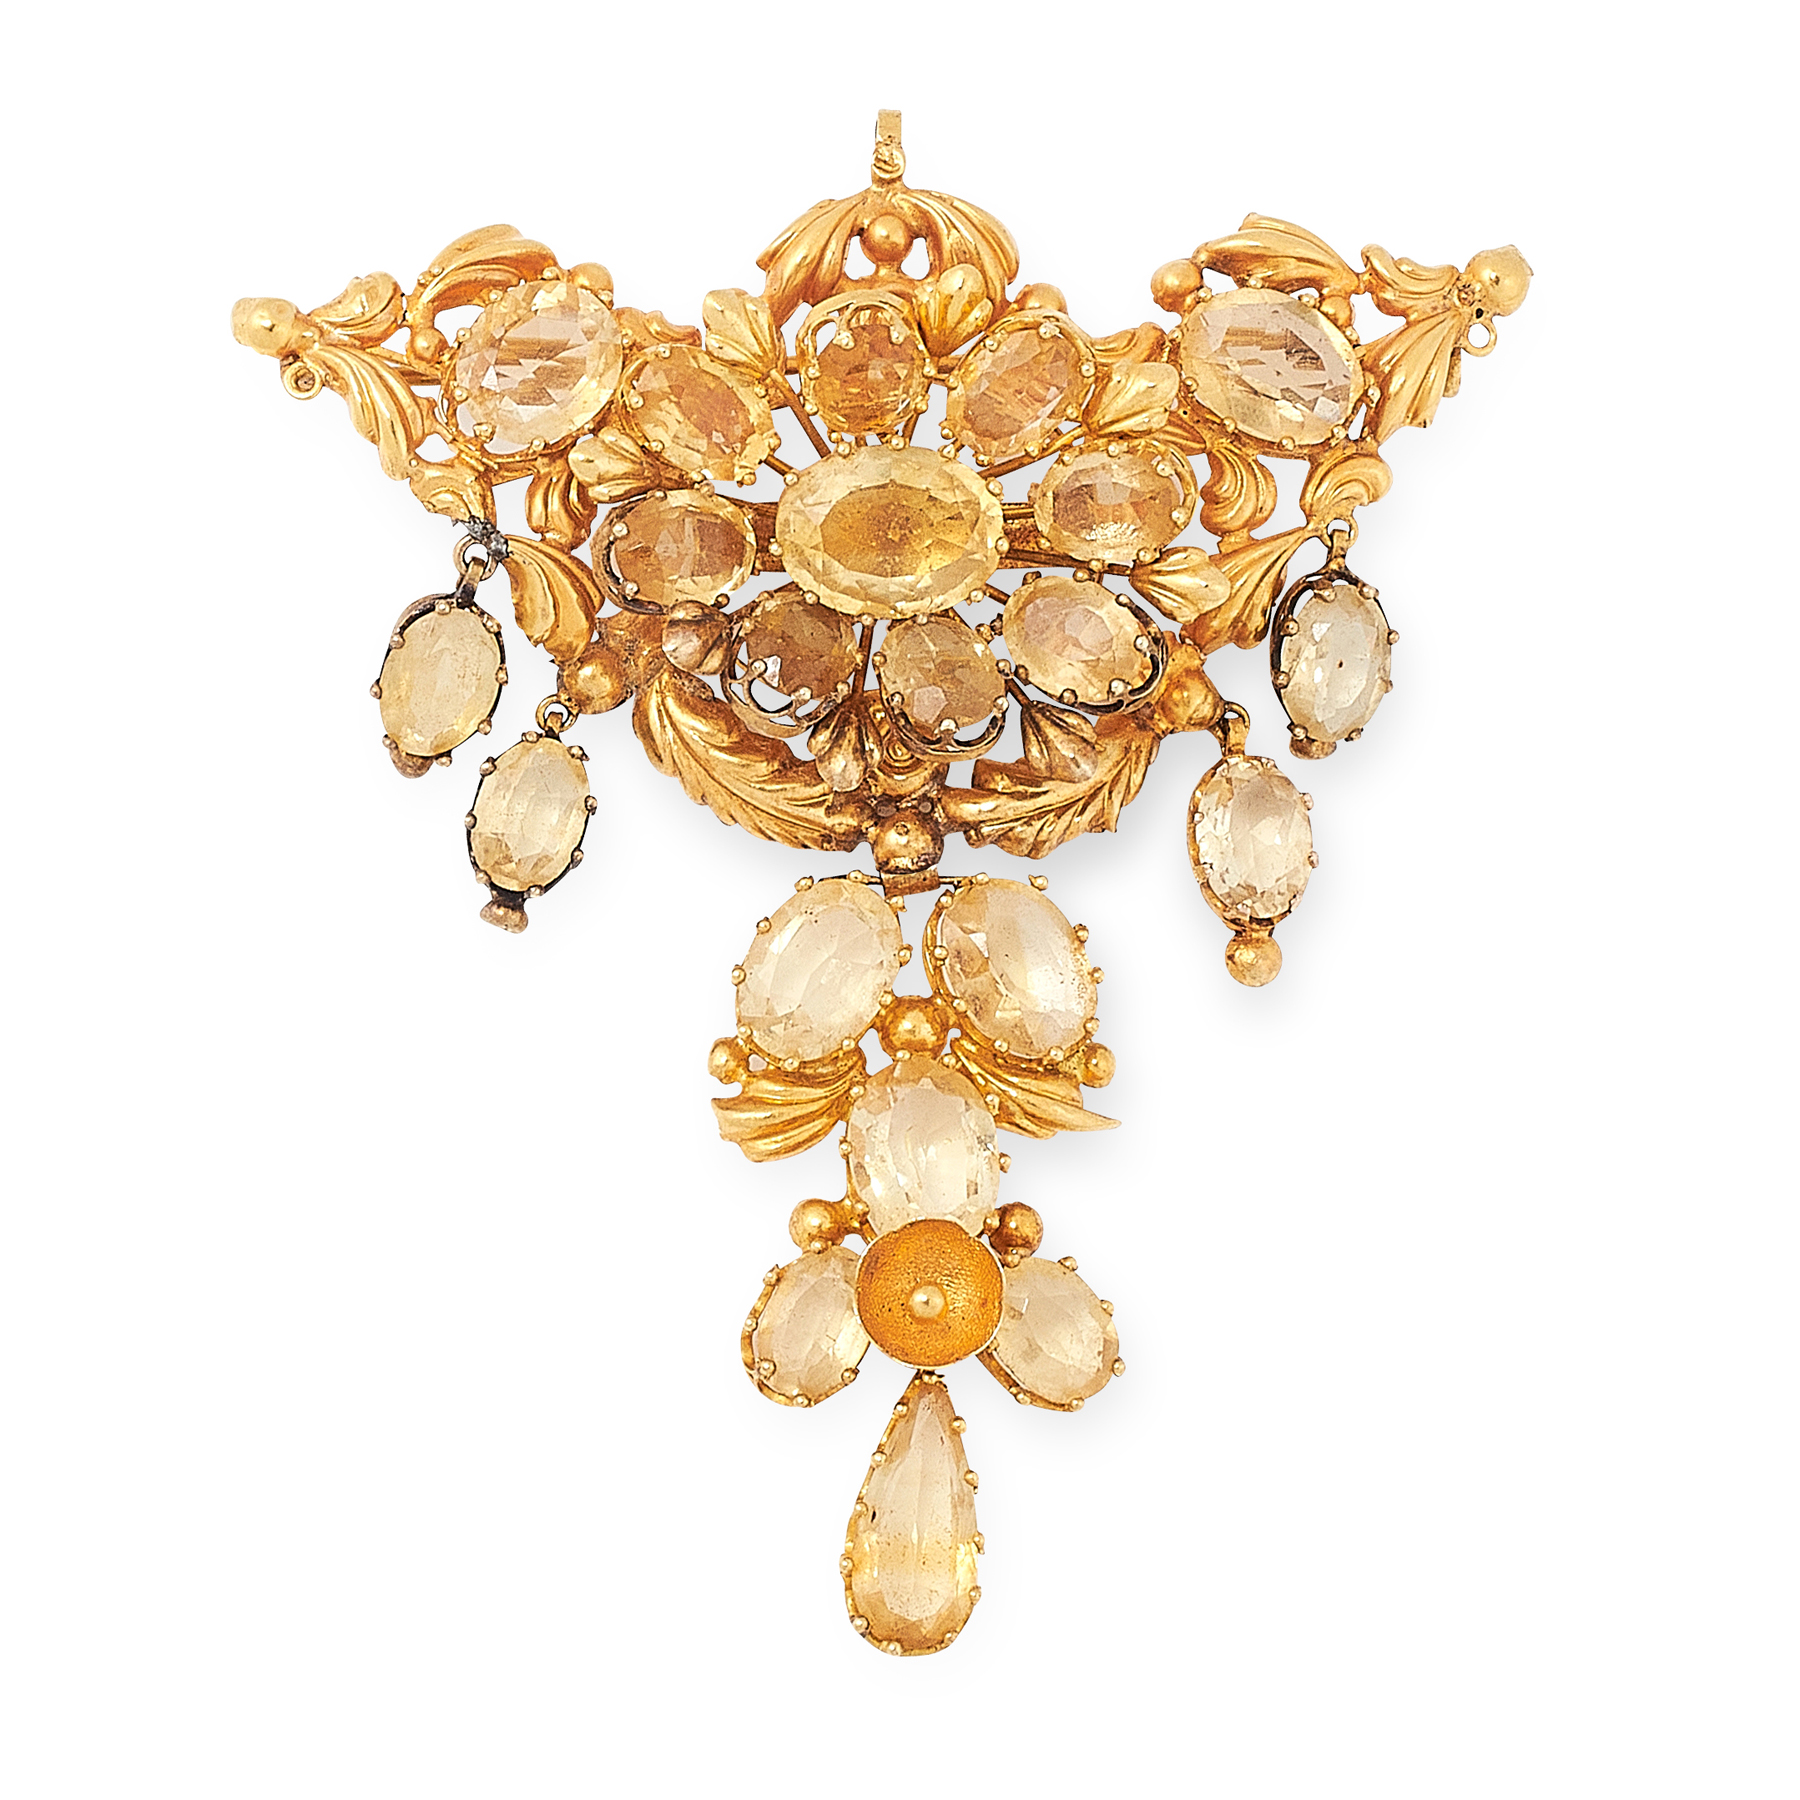 AN ANTIQUE CITRINE BROOCH in high carat yellow gold, designed as a cluster of oval cut citrines